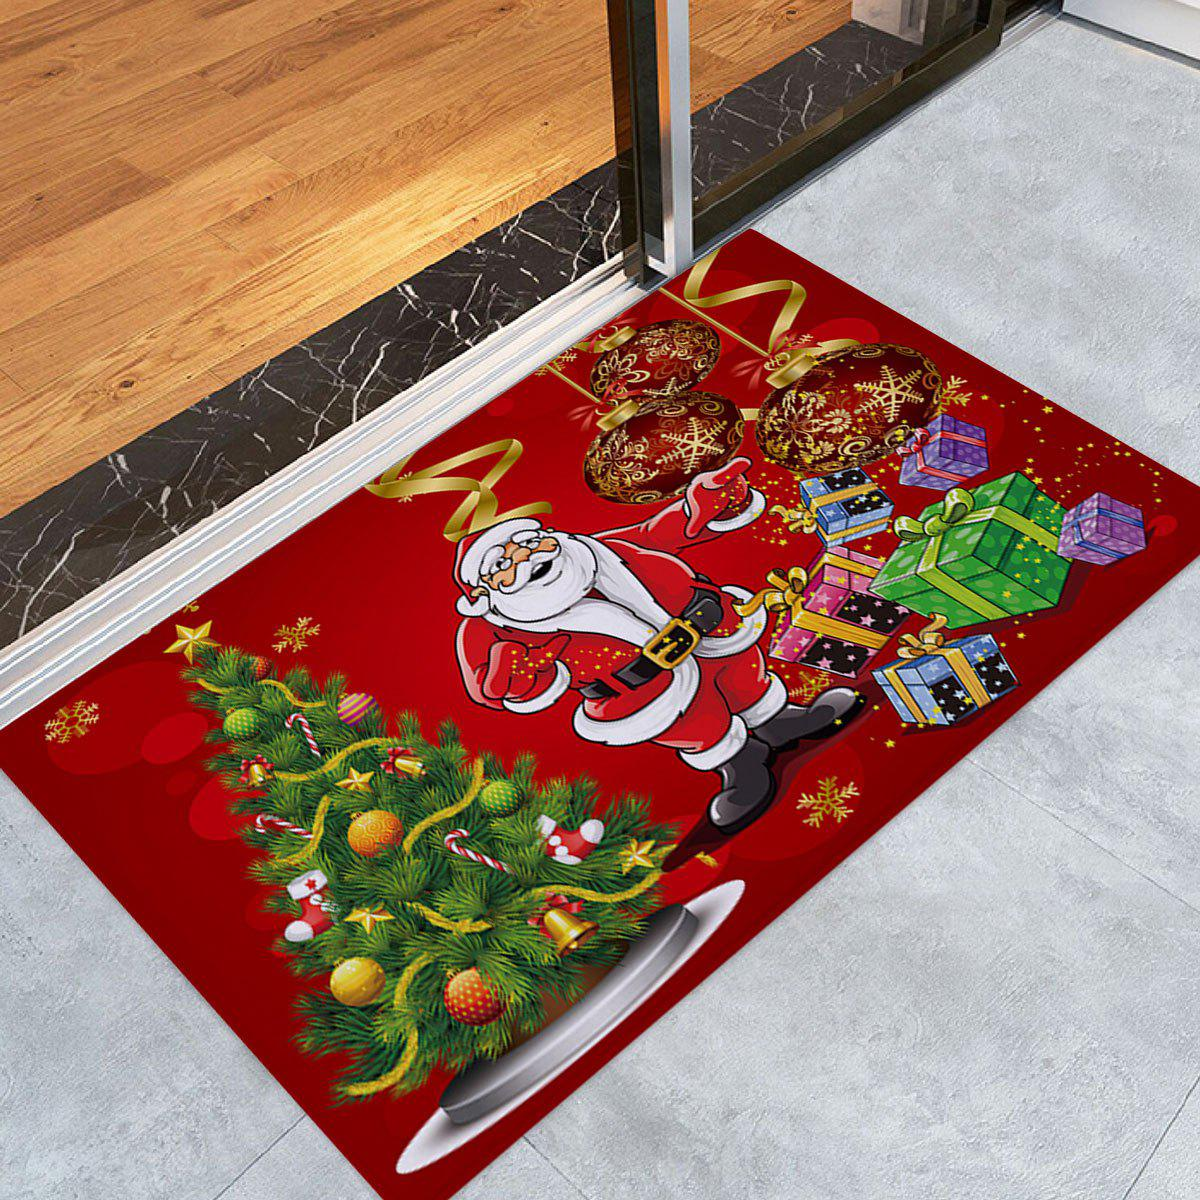 Christmas Tree Santa Baubles Pattern Indoor Outdoor Area Rug - COLORMIX W16 INCH * L24 INCH